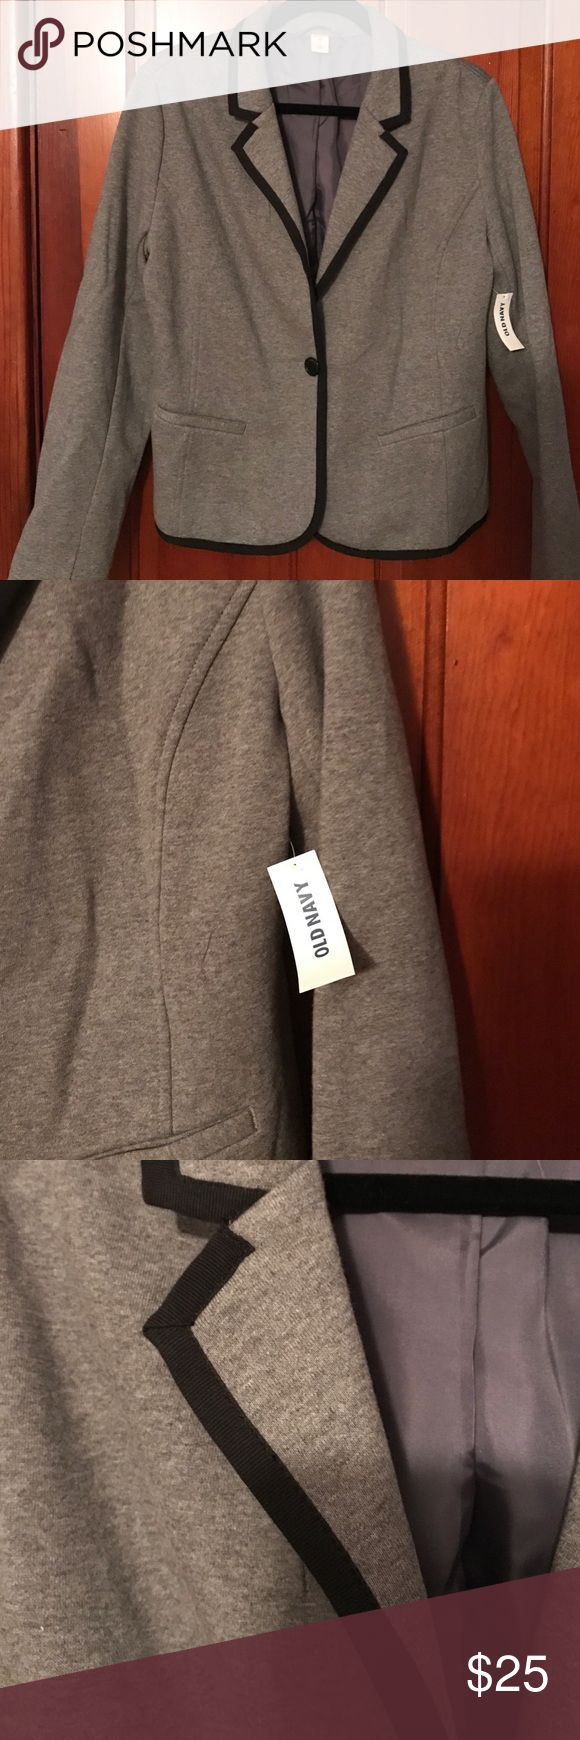 NWT Old Navy Knit Blazer NWT Old Navy knit blazer with grosgrain ribbon trim Old Navy Jackets & Coats Blazers